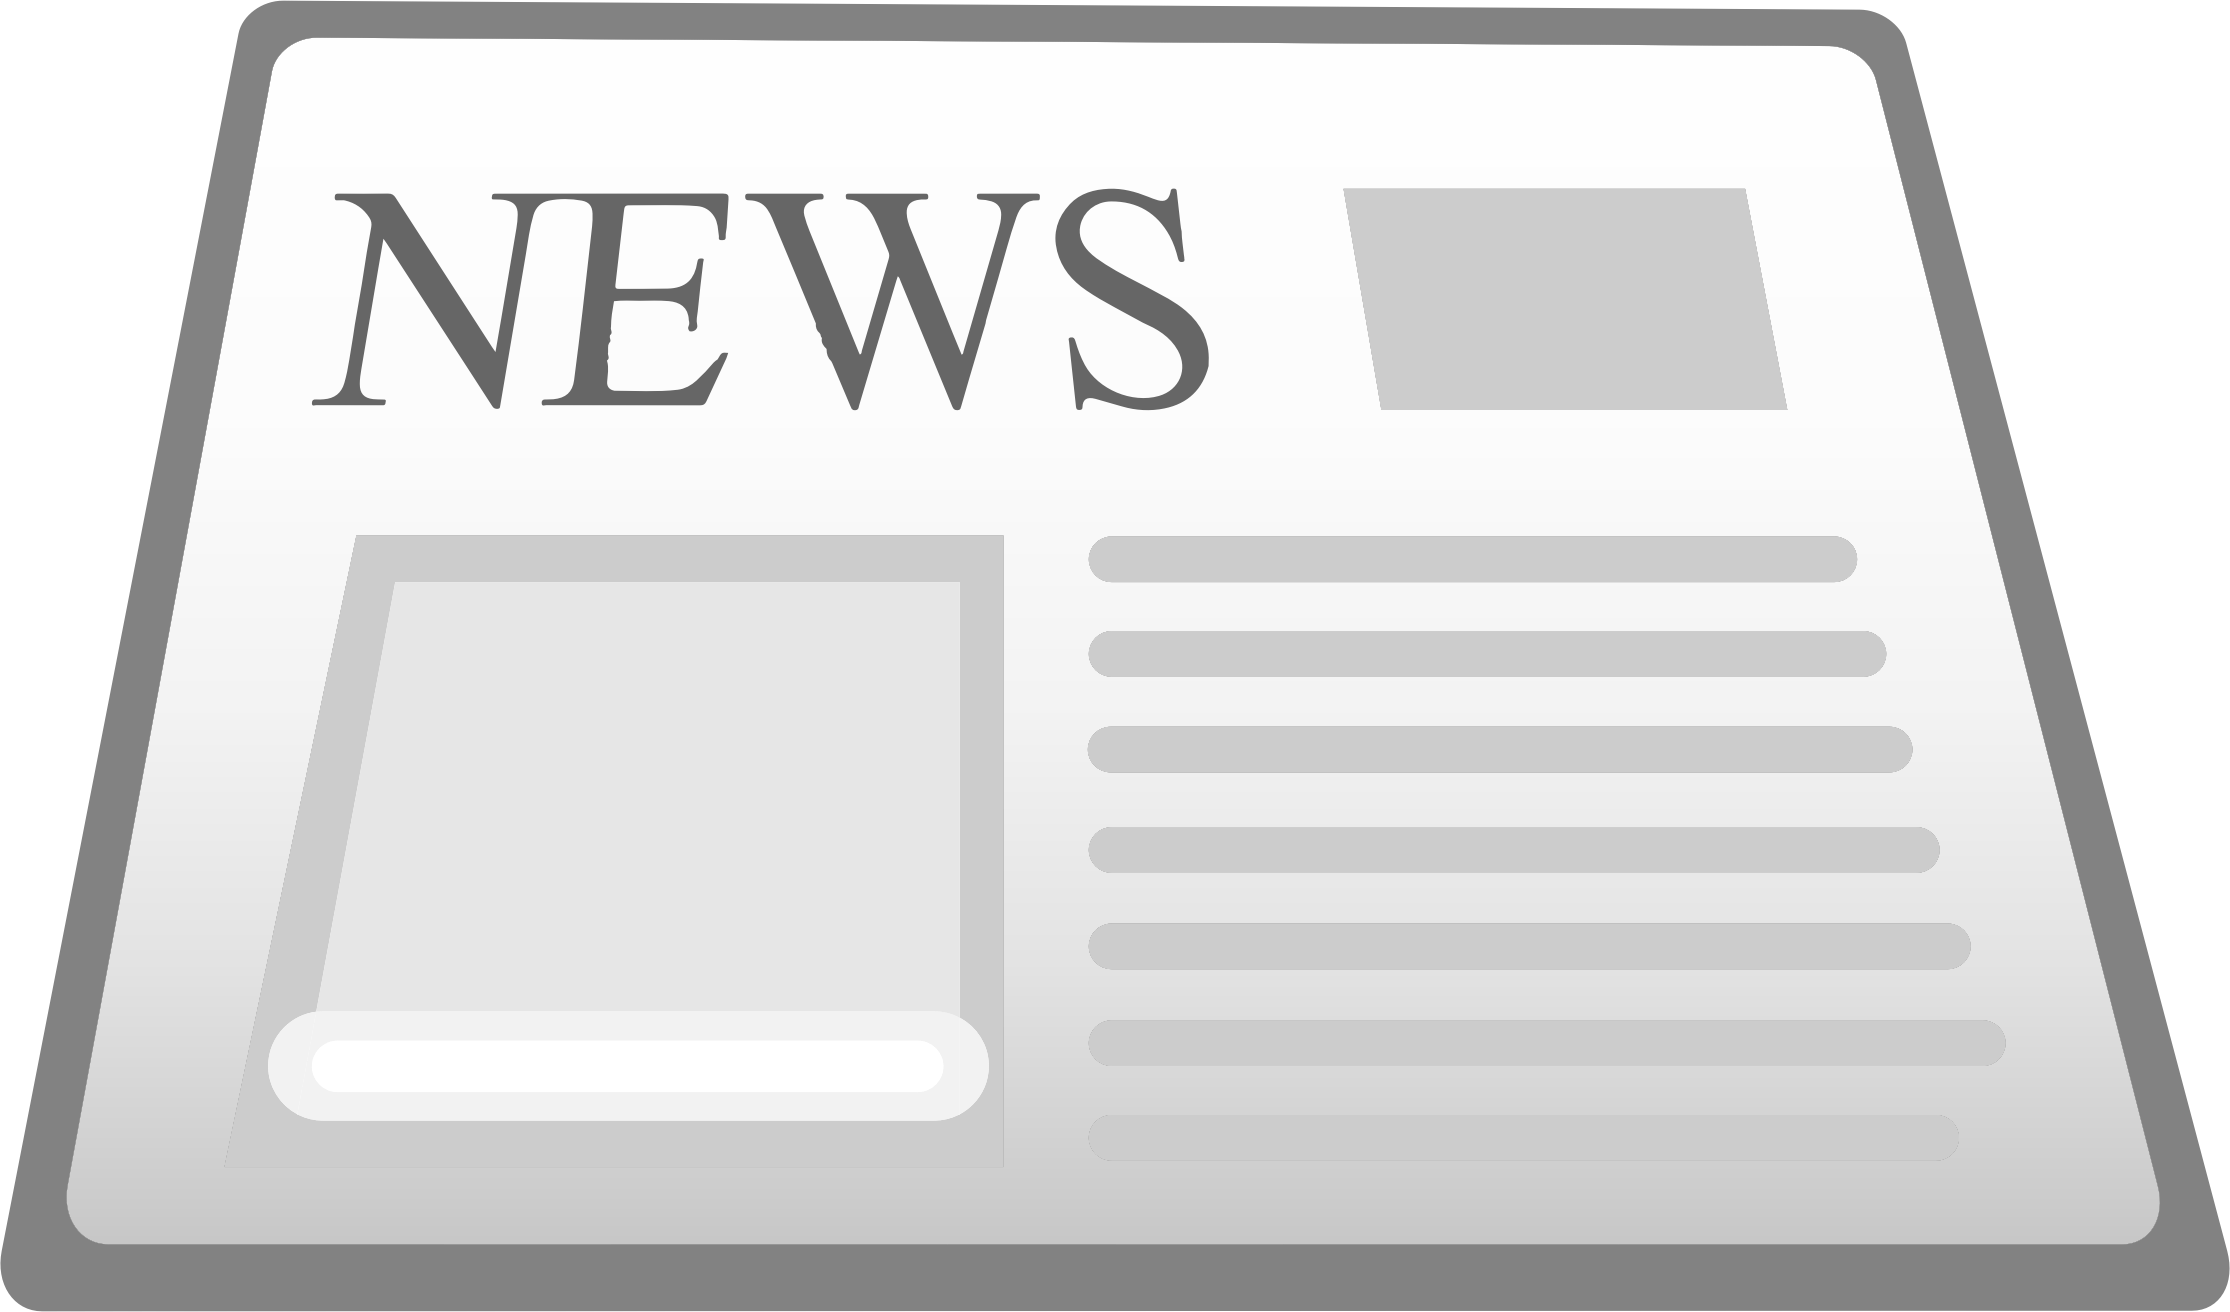 Newspaper clipart newspapaer. Icon big image png